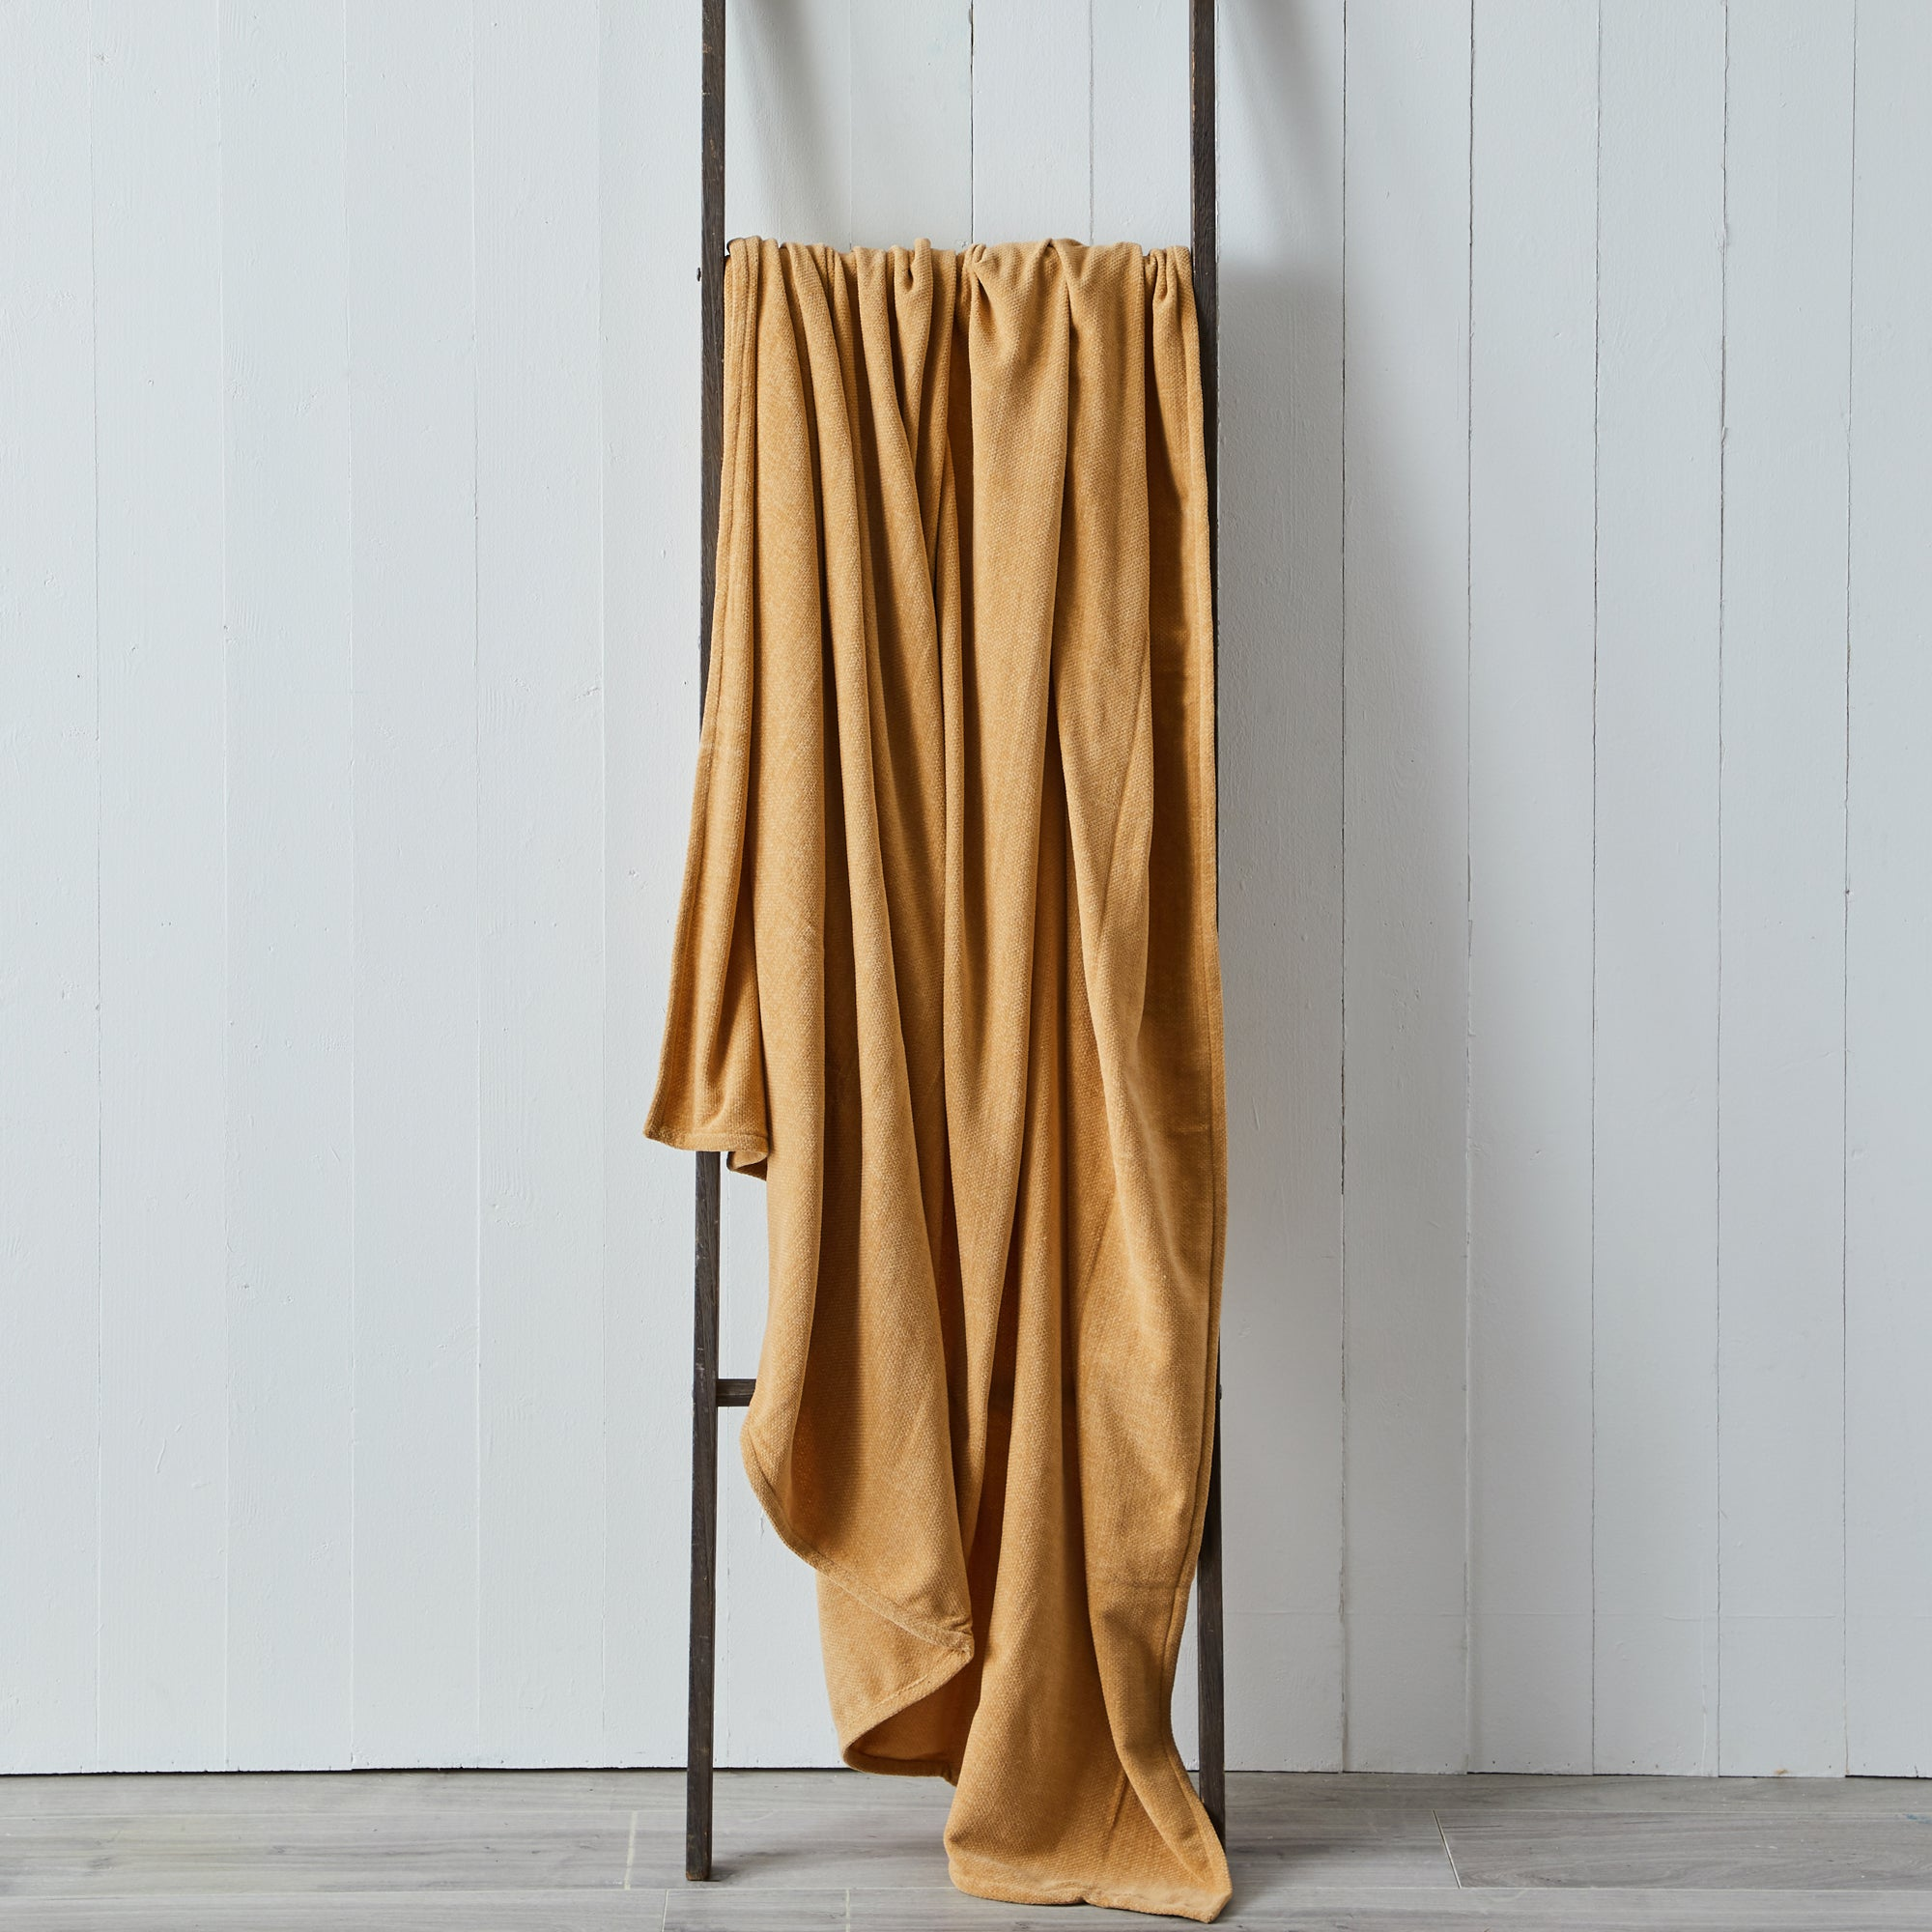 Photo of Carys chenille 200cm x 200cm throw carys natural